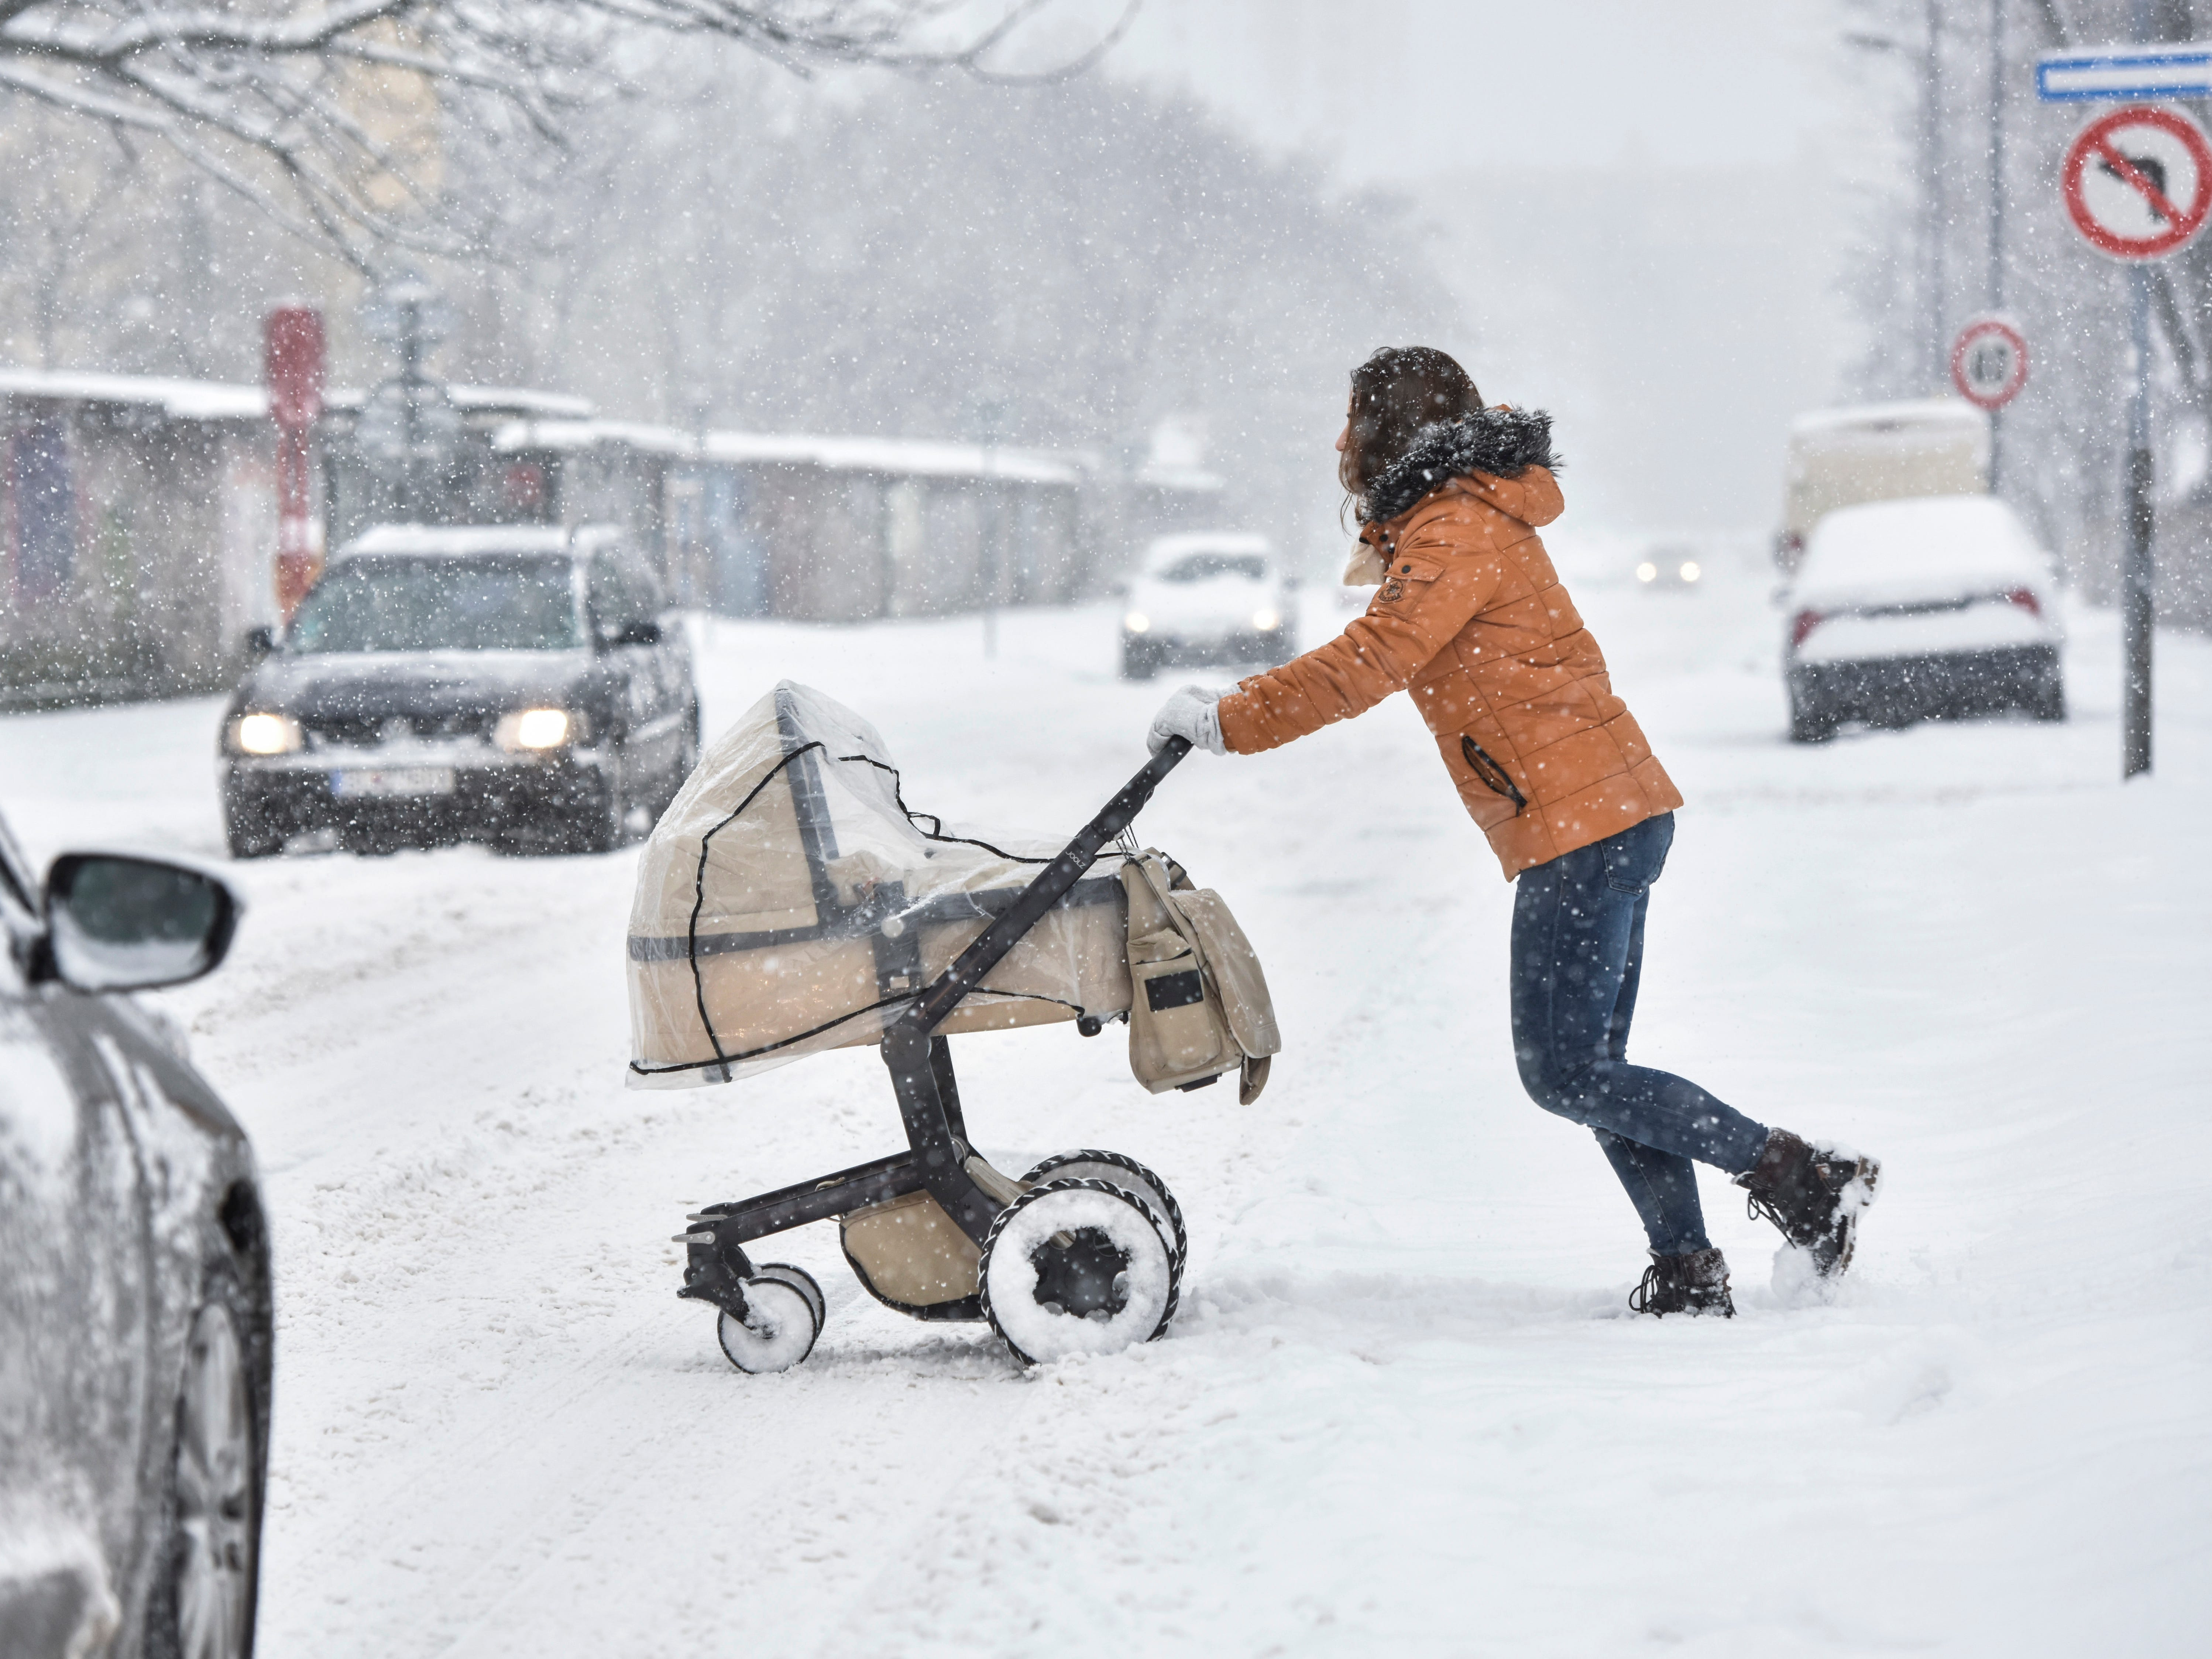 A woman pushes a pram across the street during heavy snowfall in Bratislava, Slovakia, Jan. 8, 2019. Cold weather has engulfed many parts of Europe.